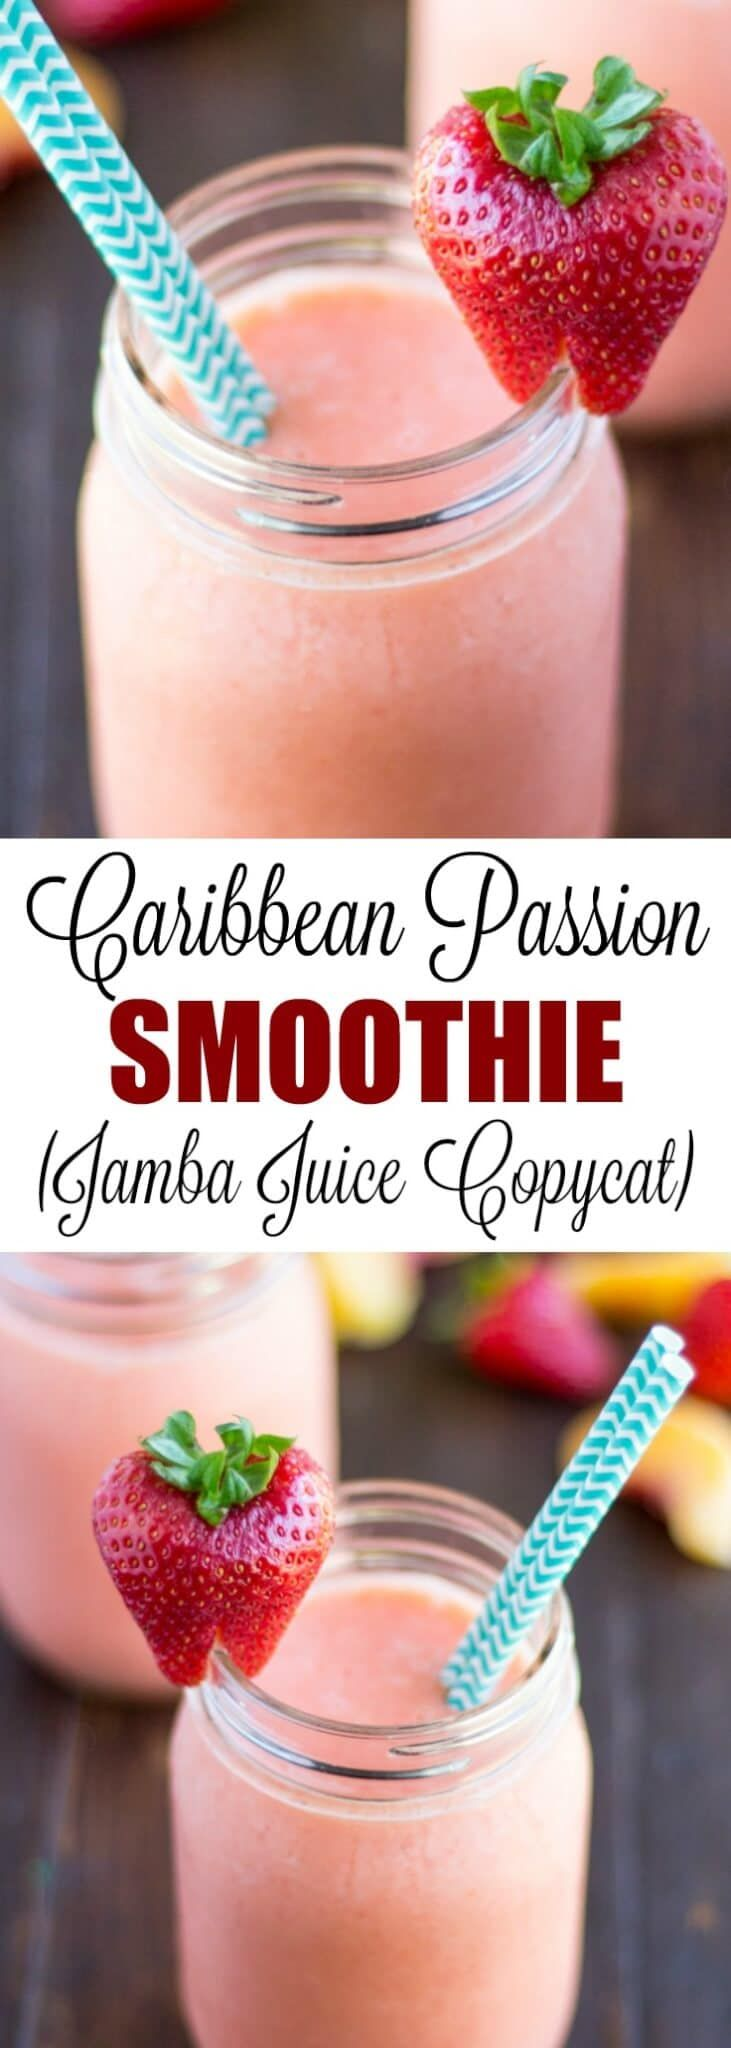 This Caribbean Passion Smoothie Recipe is a copycat of the popular Jamba Juice version: Fruity and delicious perfection! via @culinaryhill